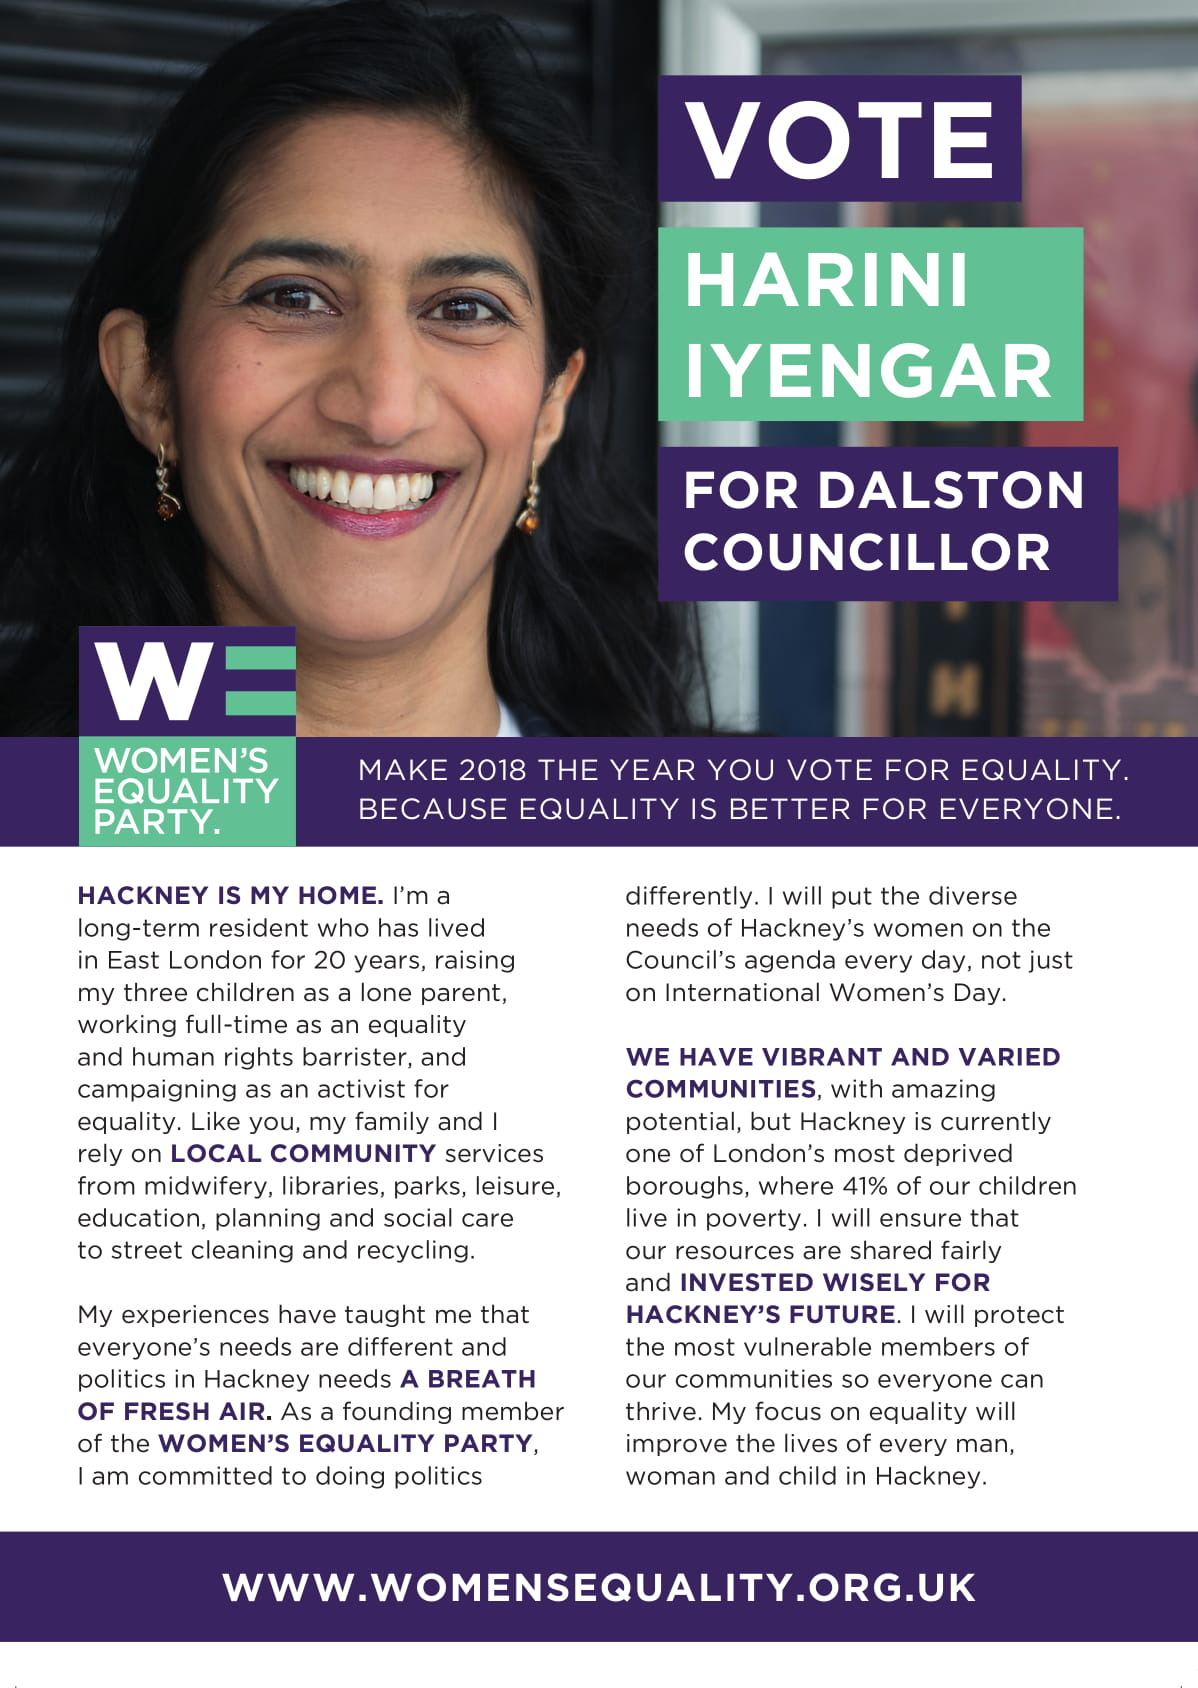 Hackney_WEP_Dalston_Councillor_Flyer_130418_crop-1.jpg